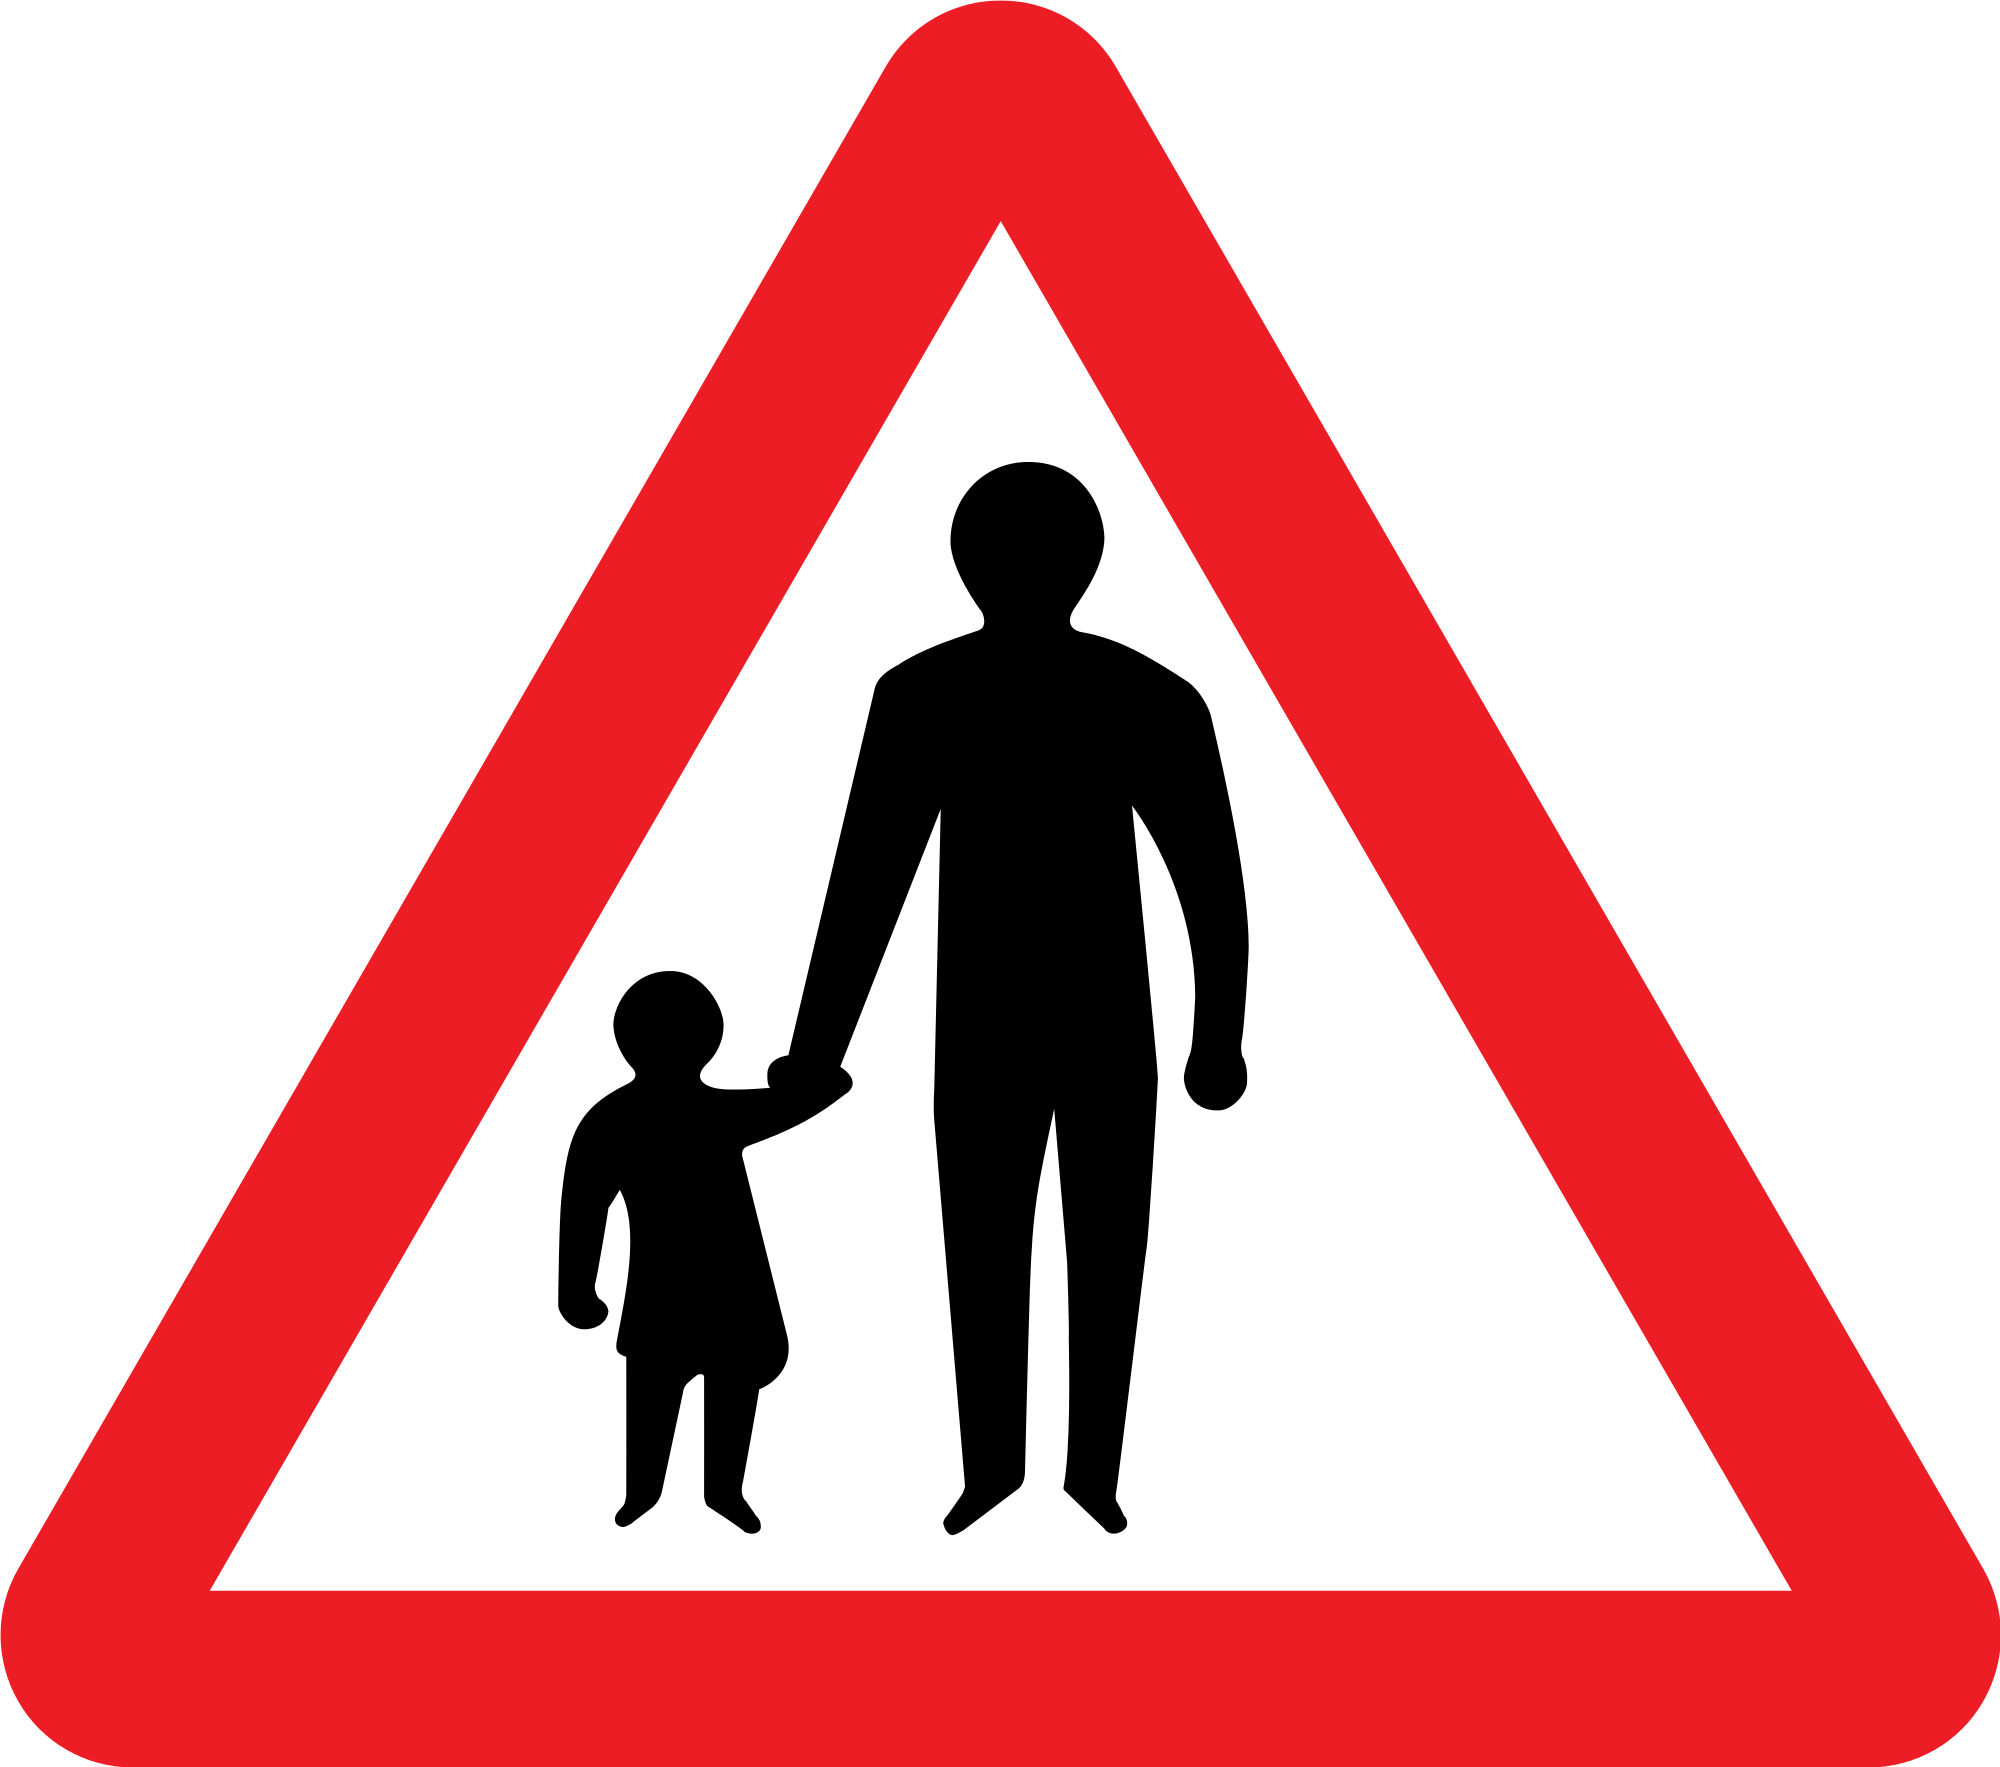 Road sign silhouette at. Clipart walking pedestrian